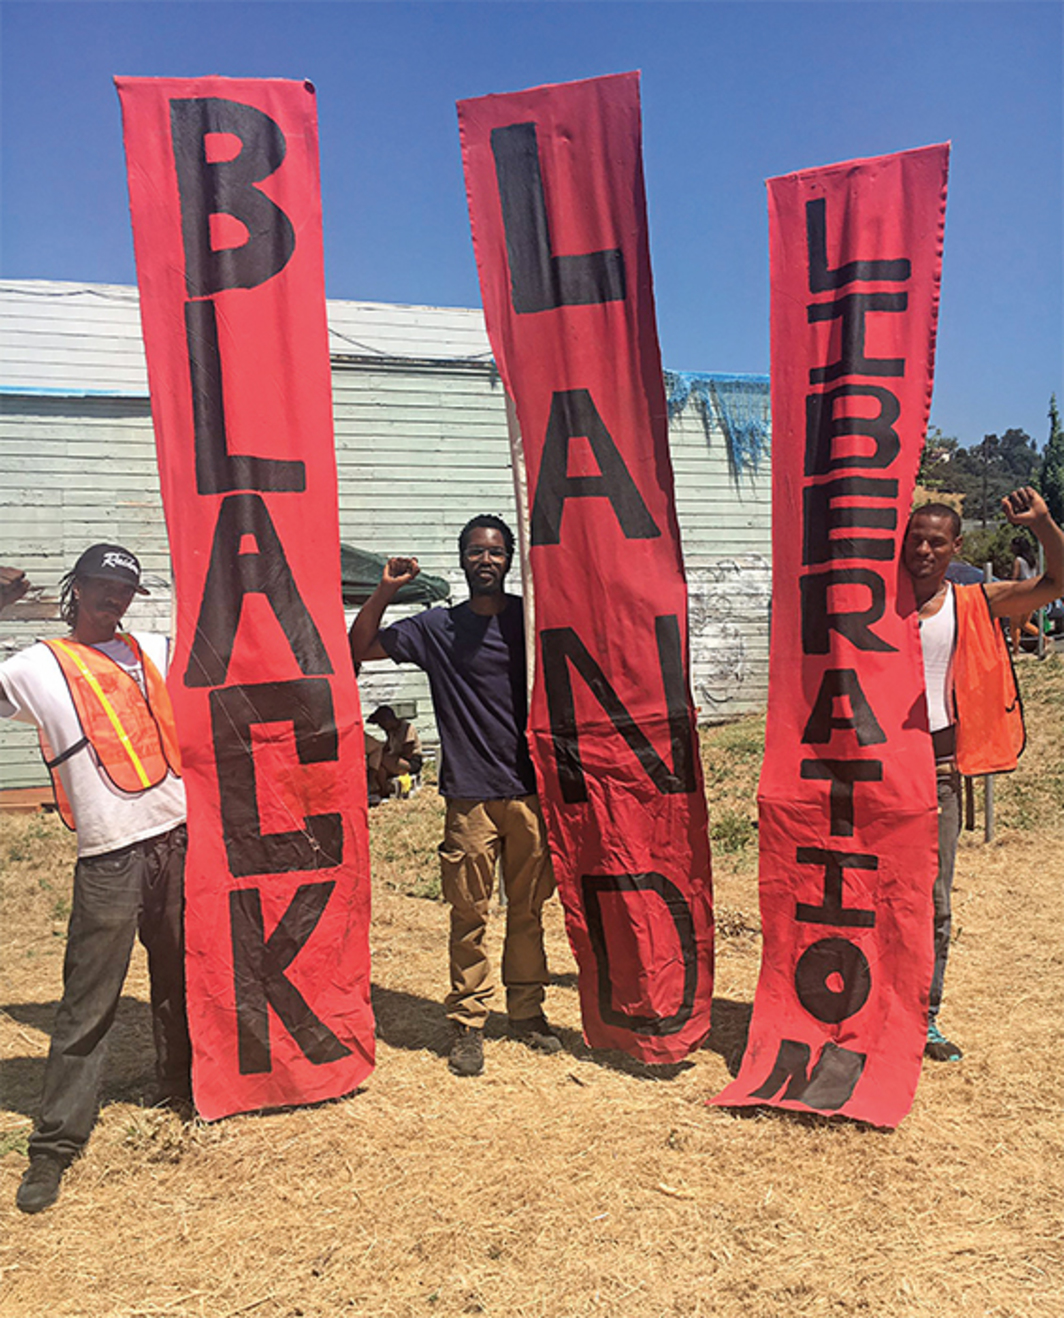 Black Land and Liberation Initiative event, East Oakland, CA, June 19, 2017. Photo: Roselyn Berry/Twitter.